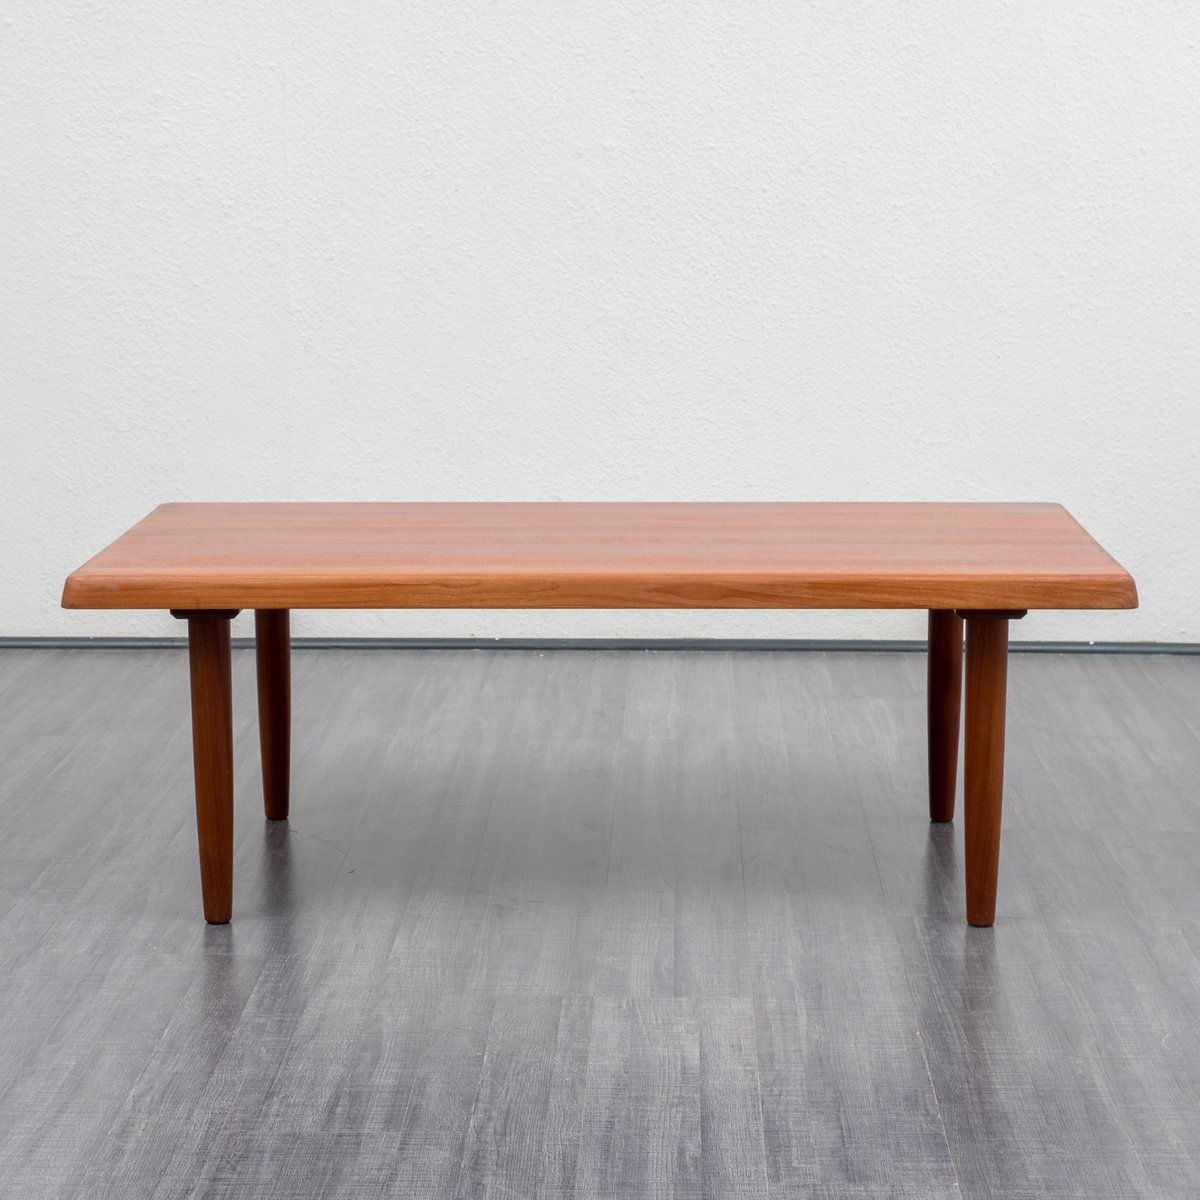 Teak Burger Coffee Table: Teak Coffee Table, 1970s For Sale At Pamono